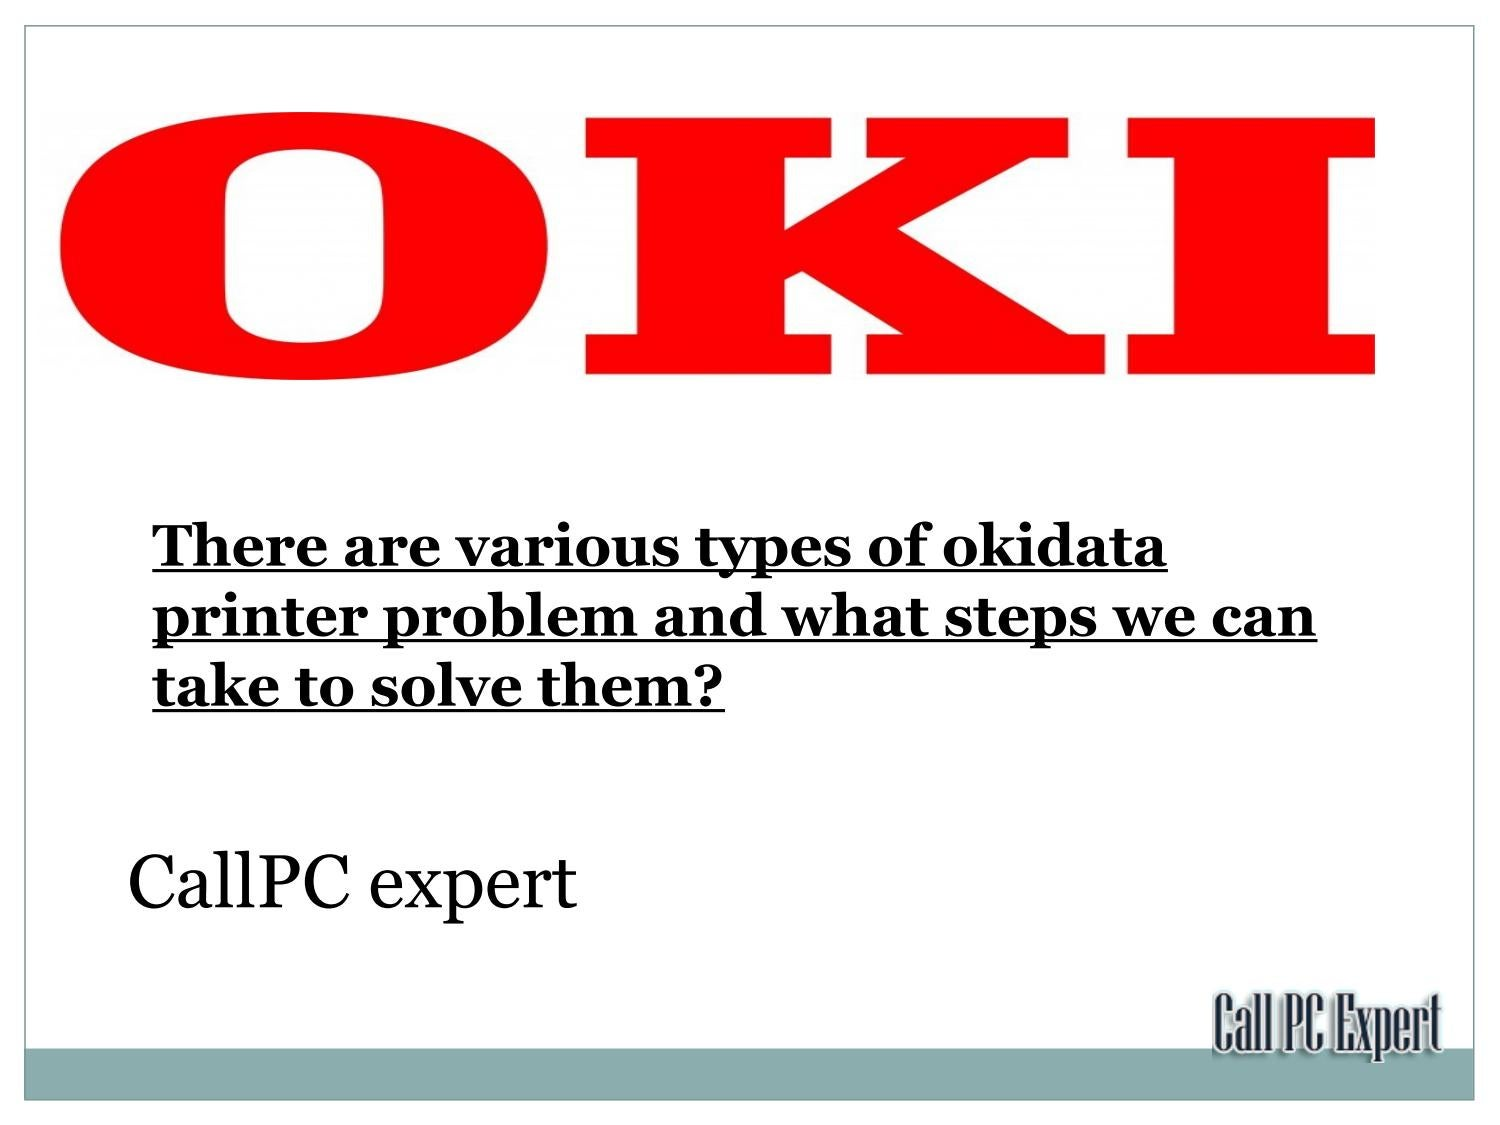 There are various types of okidata printer problem and what